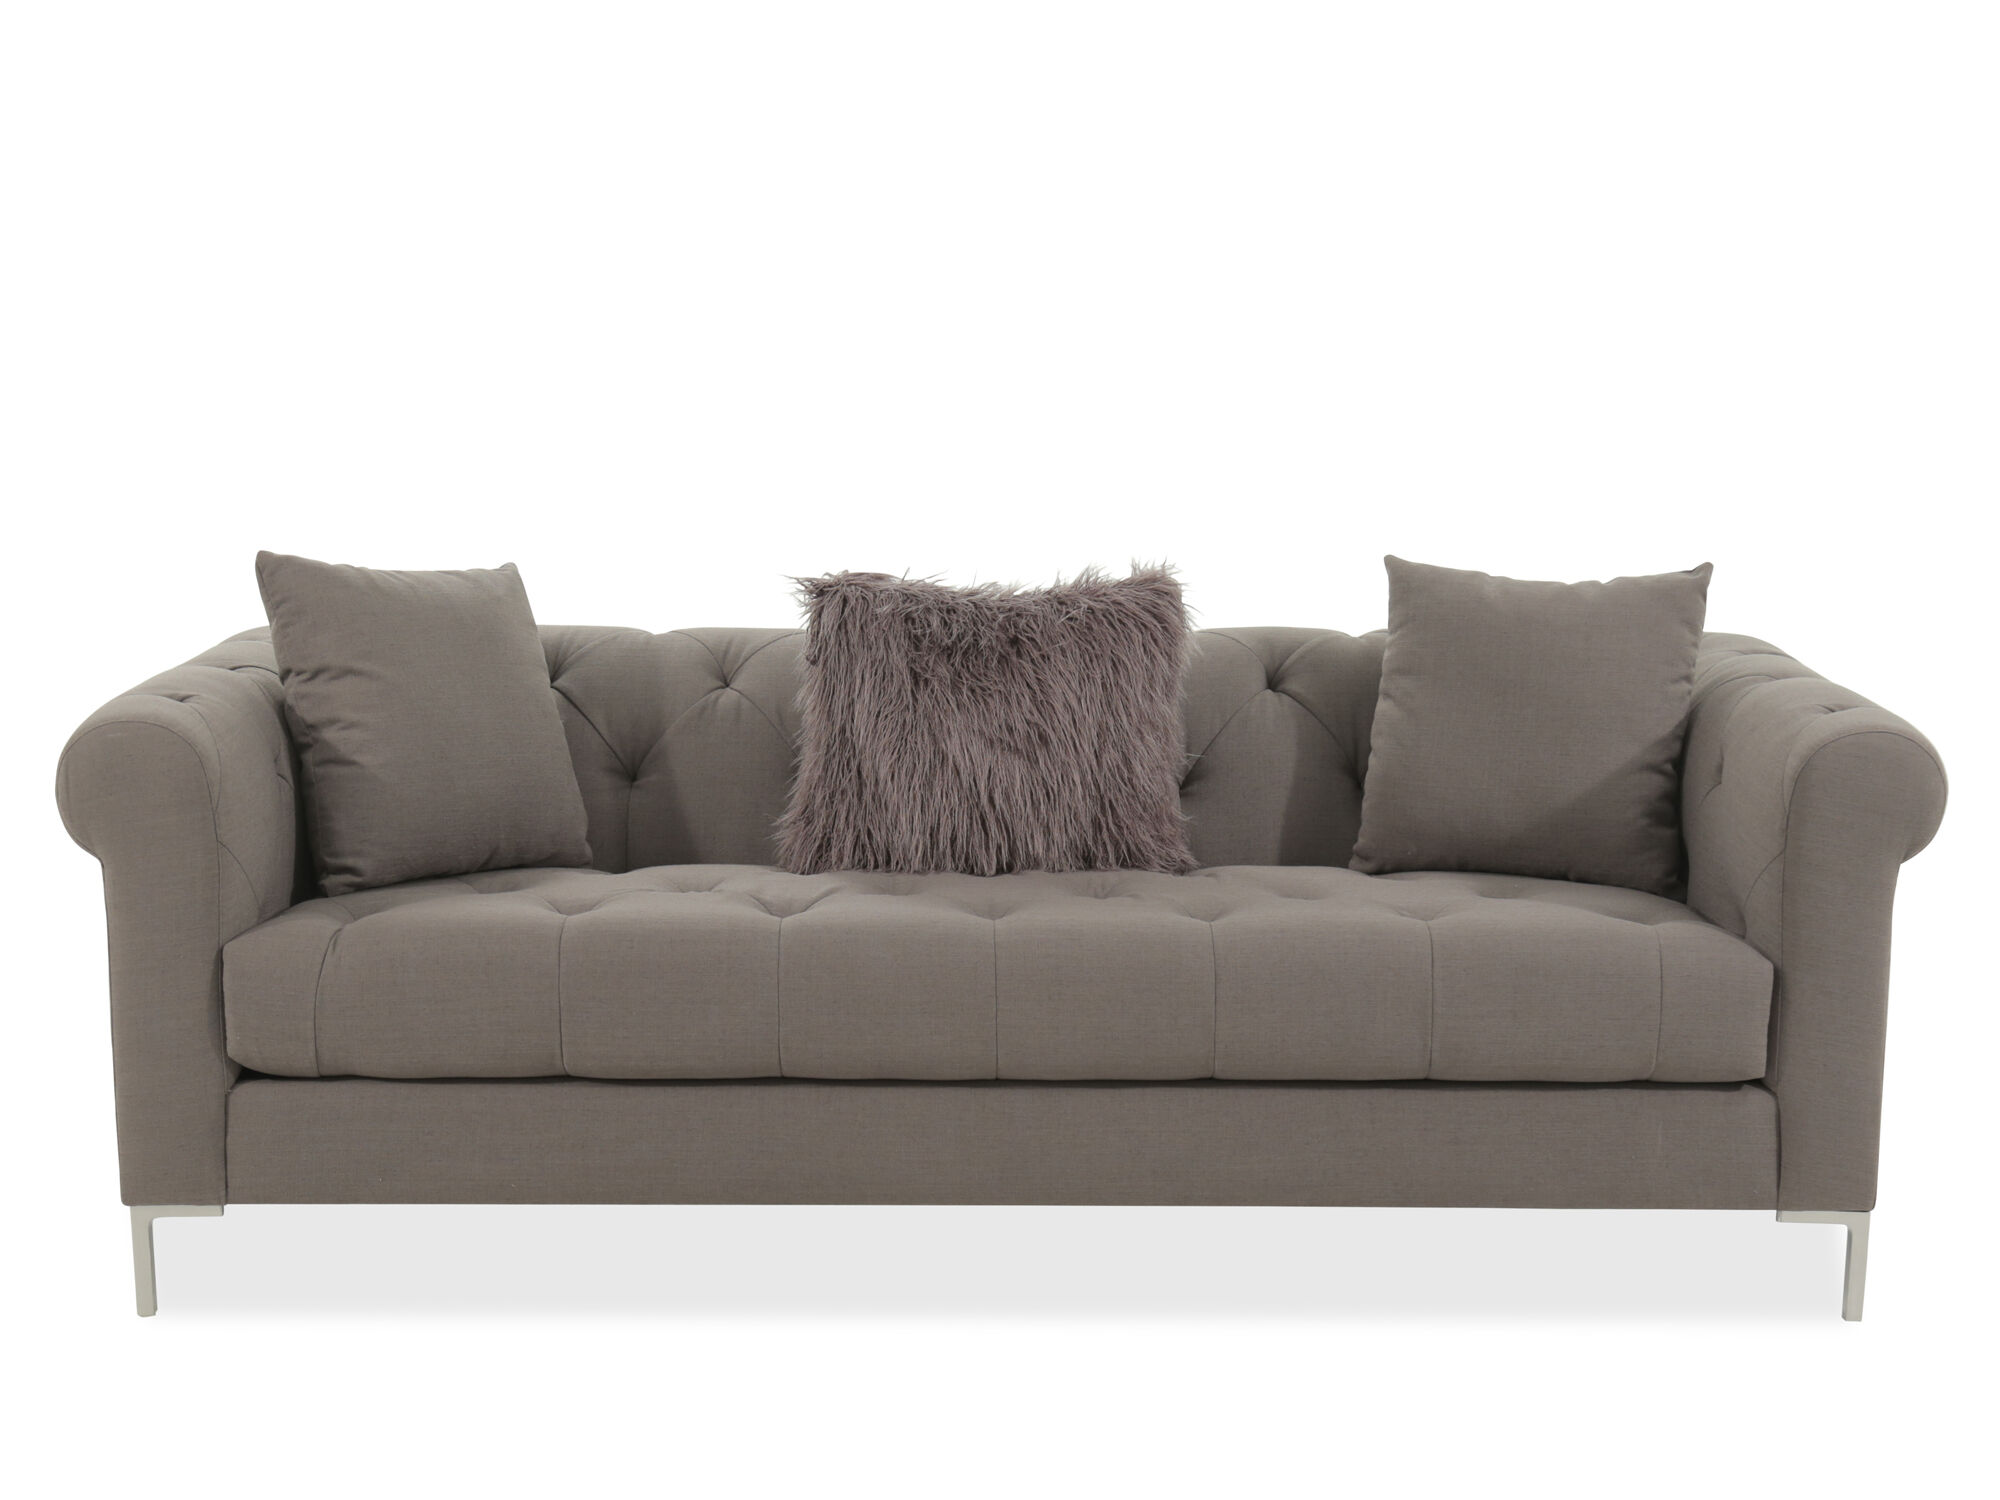 Transitional Tufted 40 Sofa in Gray  Mathis Brothers